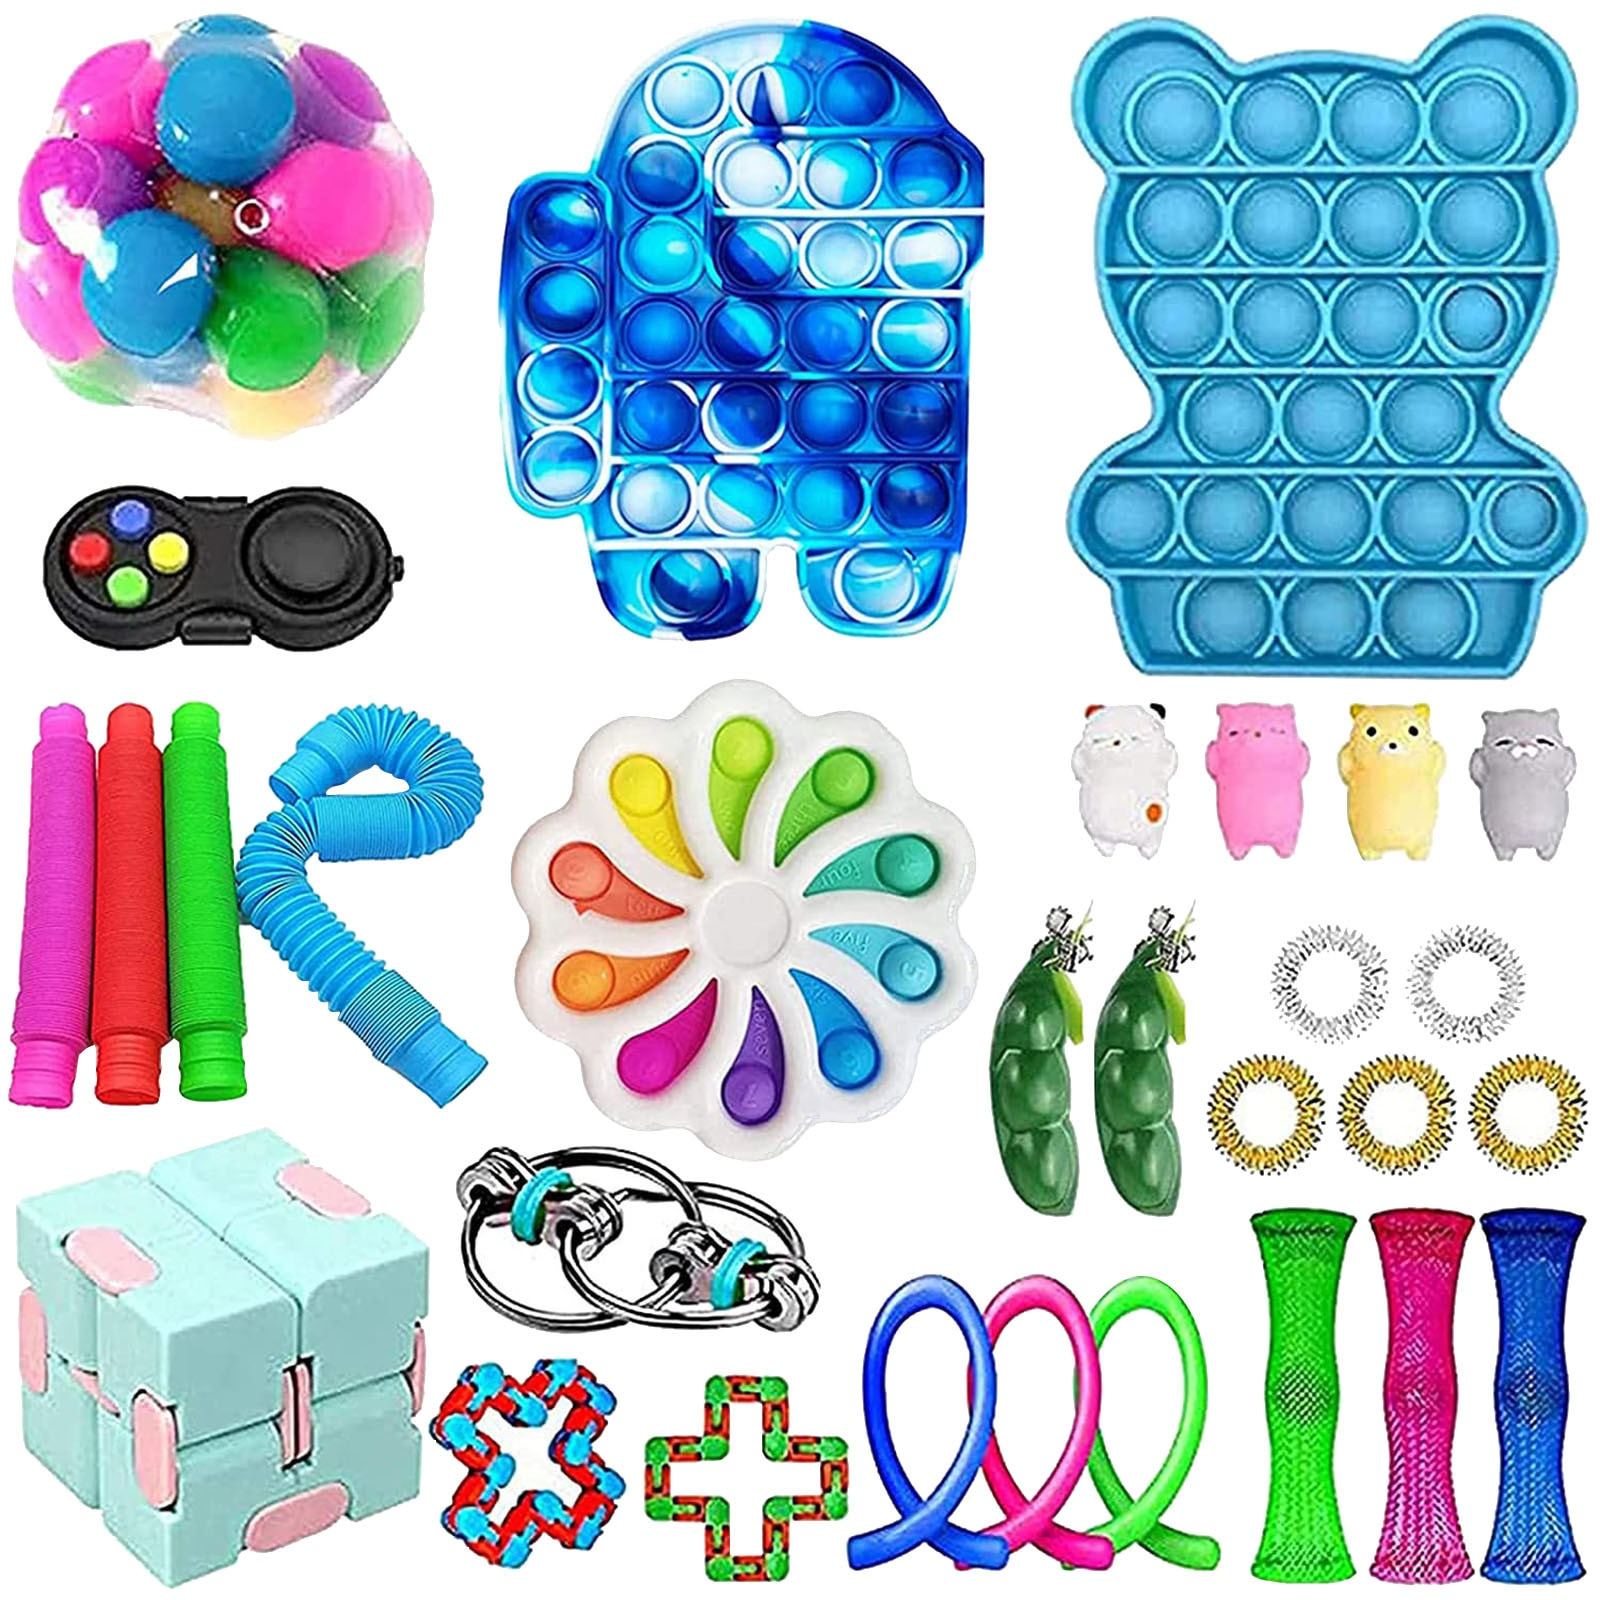 30PC Cheap Fidget Toys Anti Stress Set Strings Relief Pack Gift for Adults Children Figet Sensory Squishy Relief Antistress 2021 enlarge